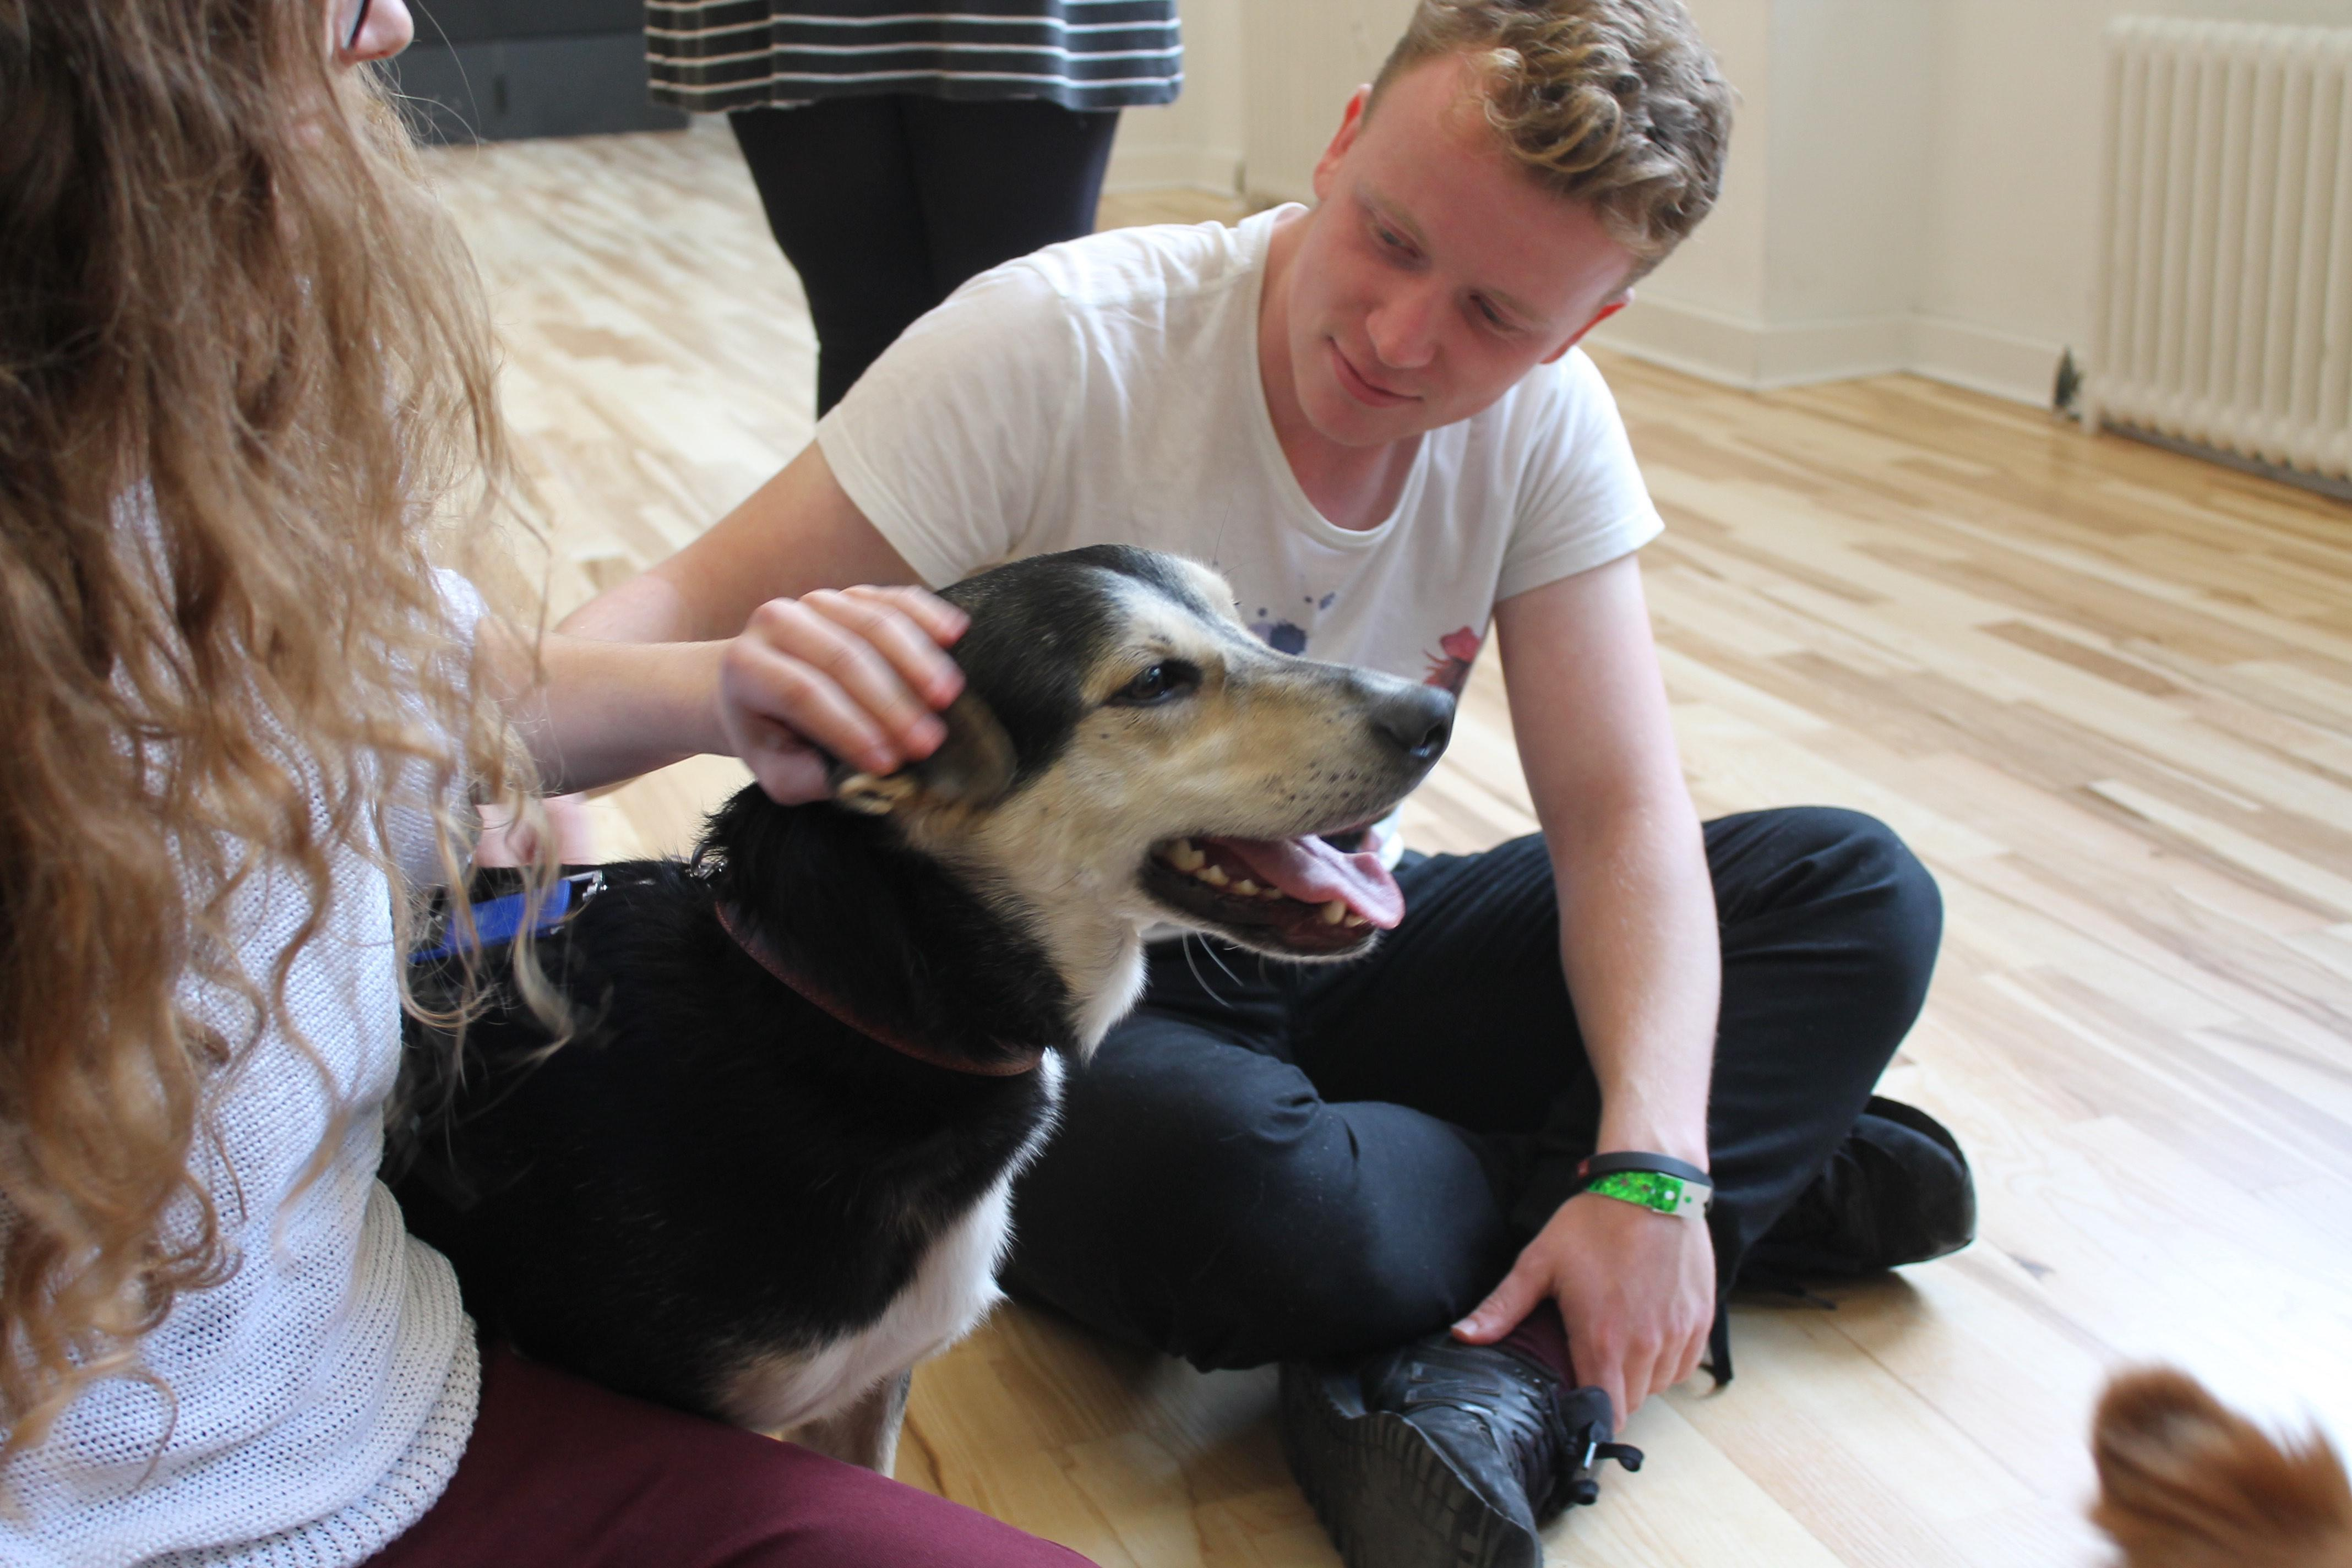 Even the dogs were de-stressing while enjoying the cuddles..